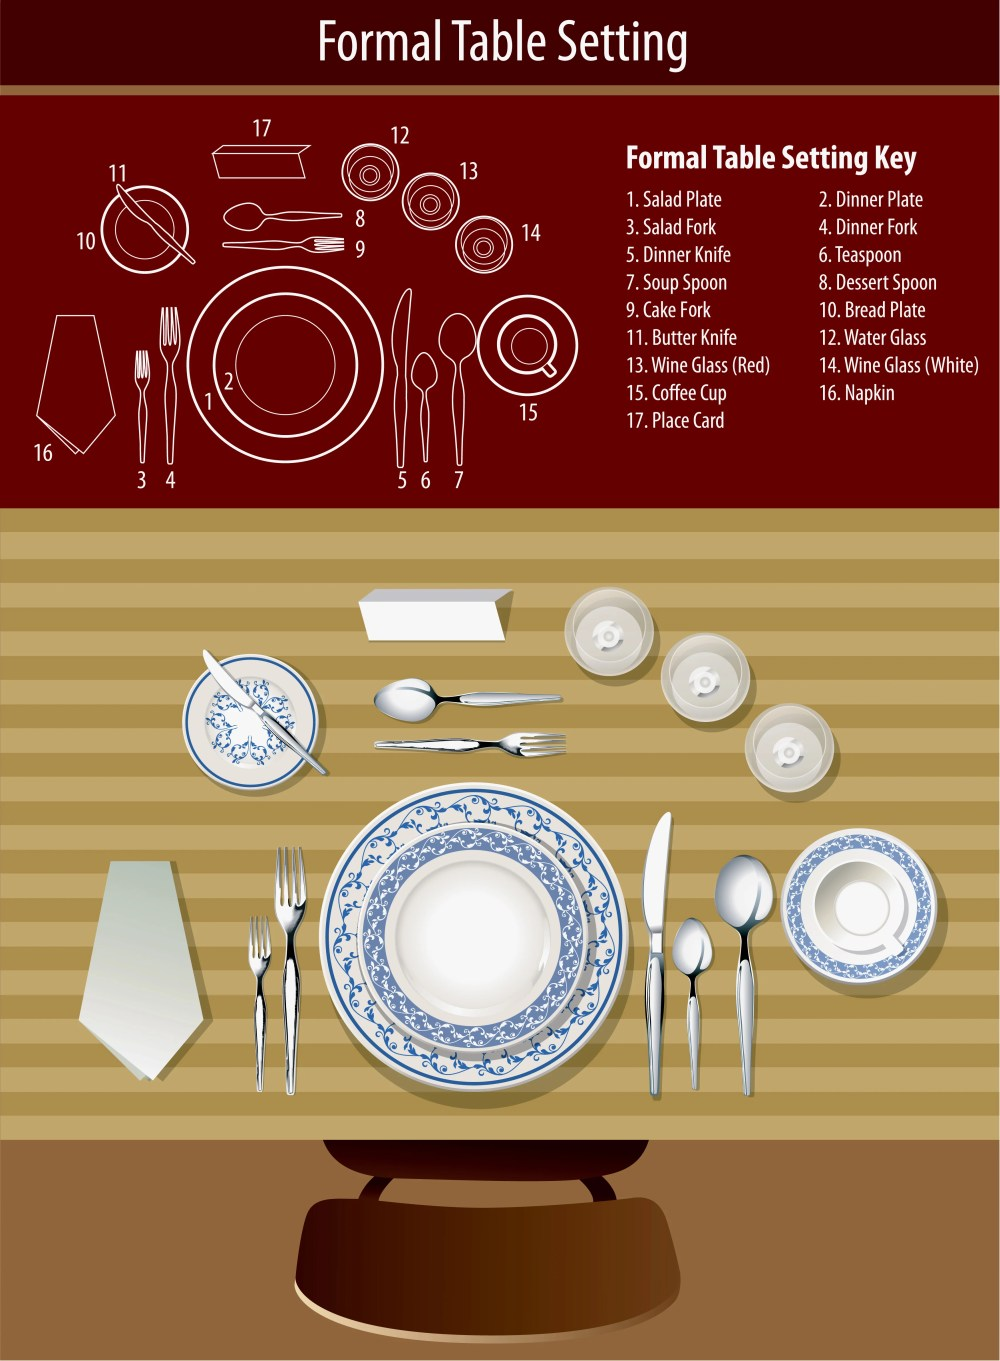 medium resolution of formal table setting diagram